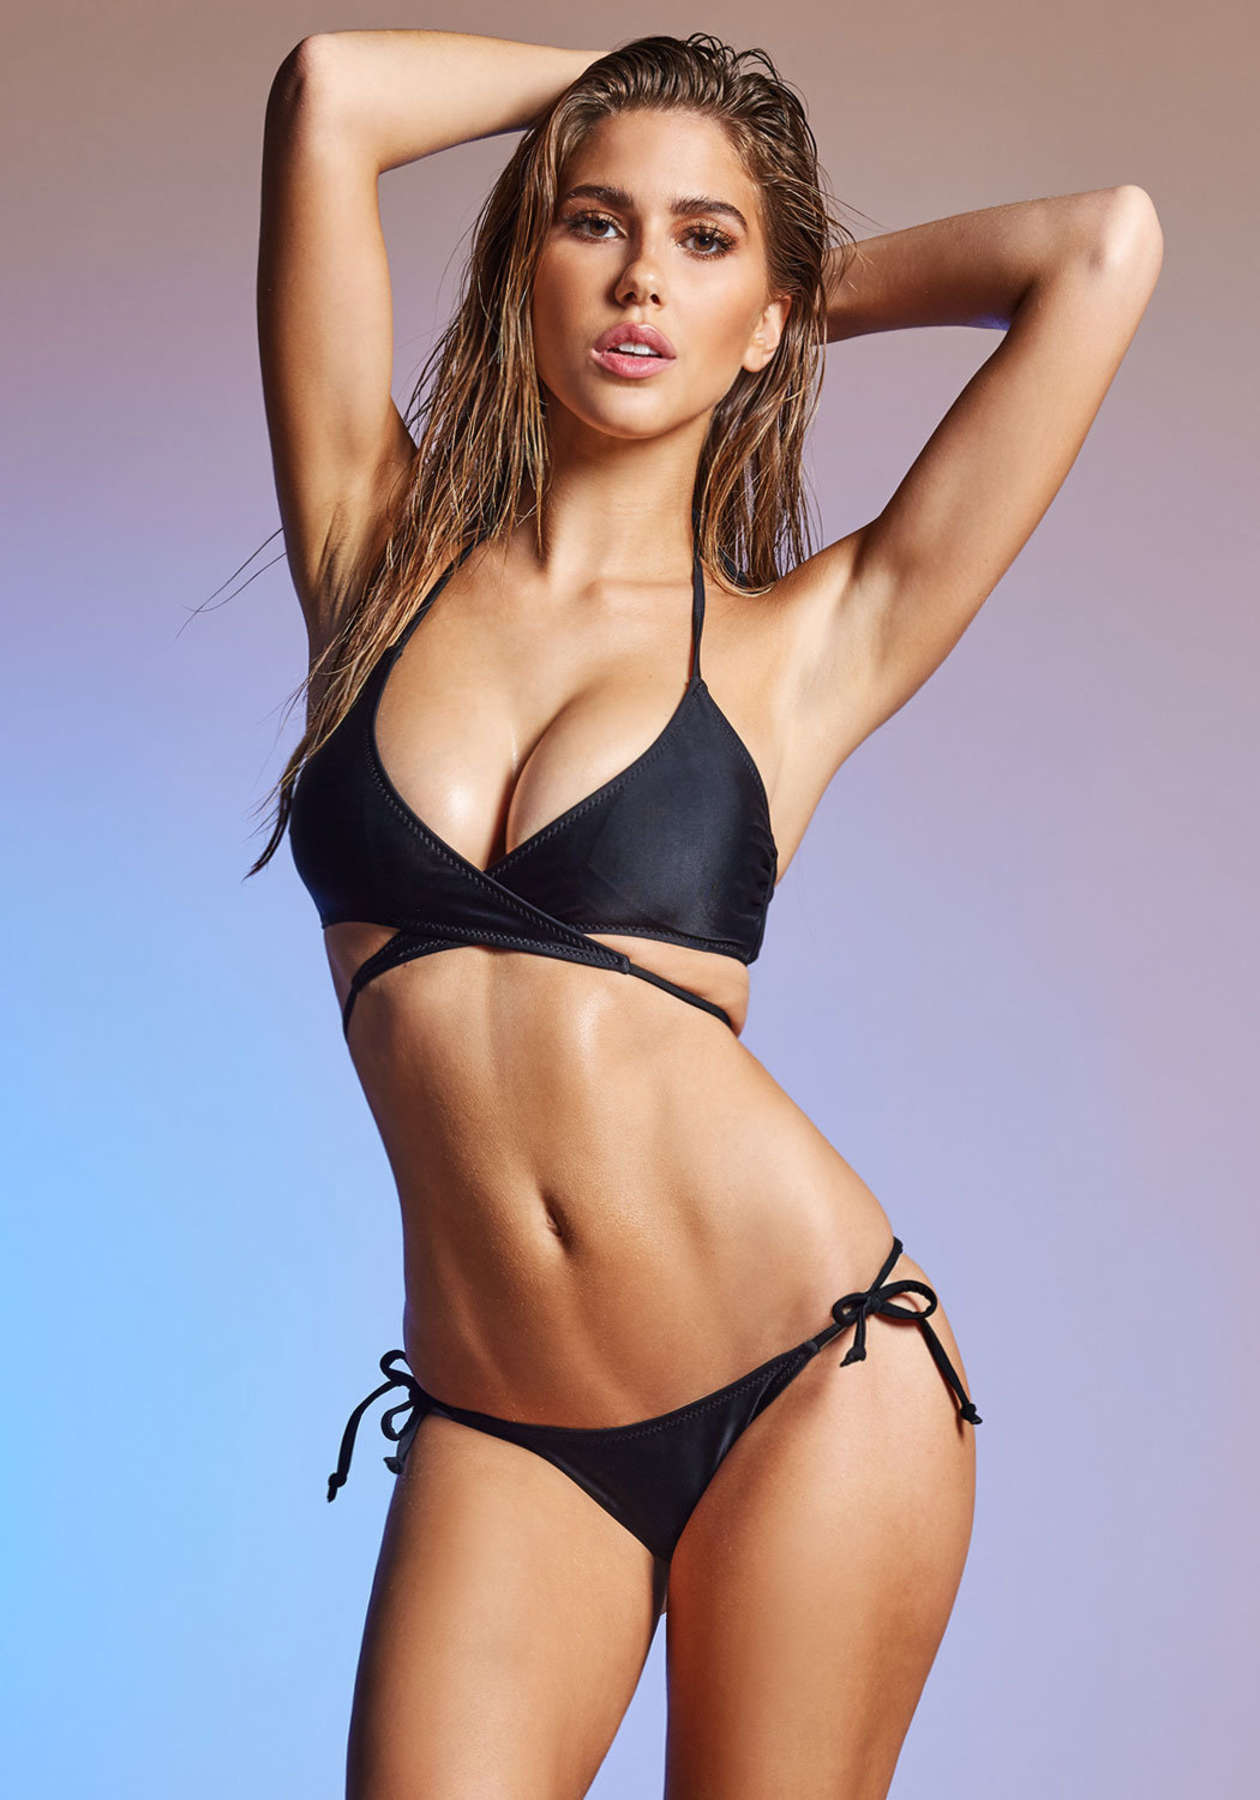 Bikini Kara Del Toro nudes (57 foto and video), Ass, Paparazzi, Twitter, braless 2019